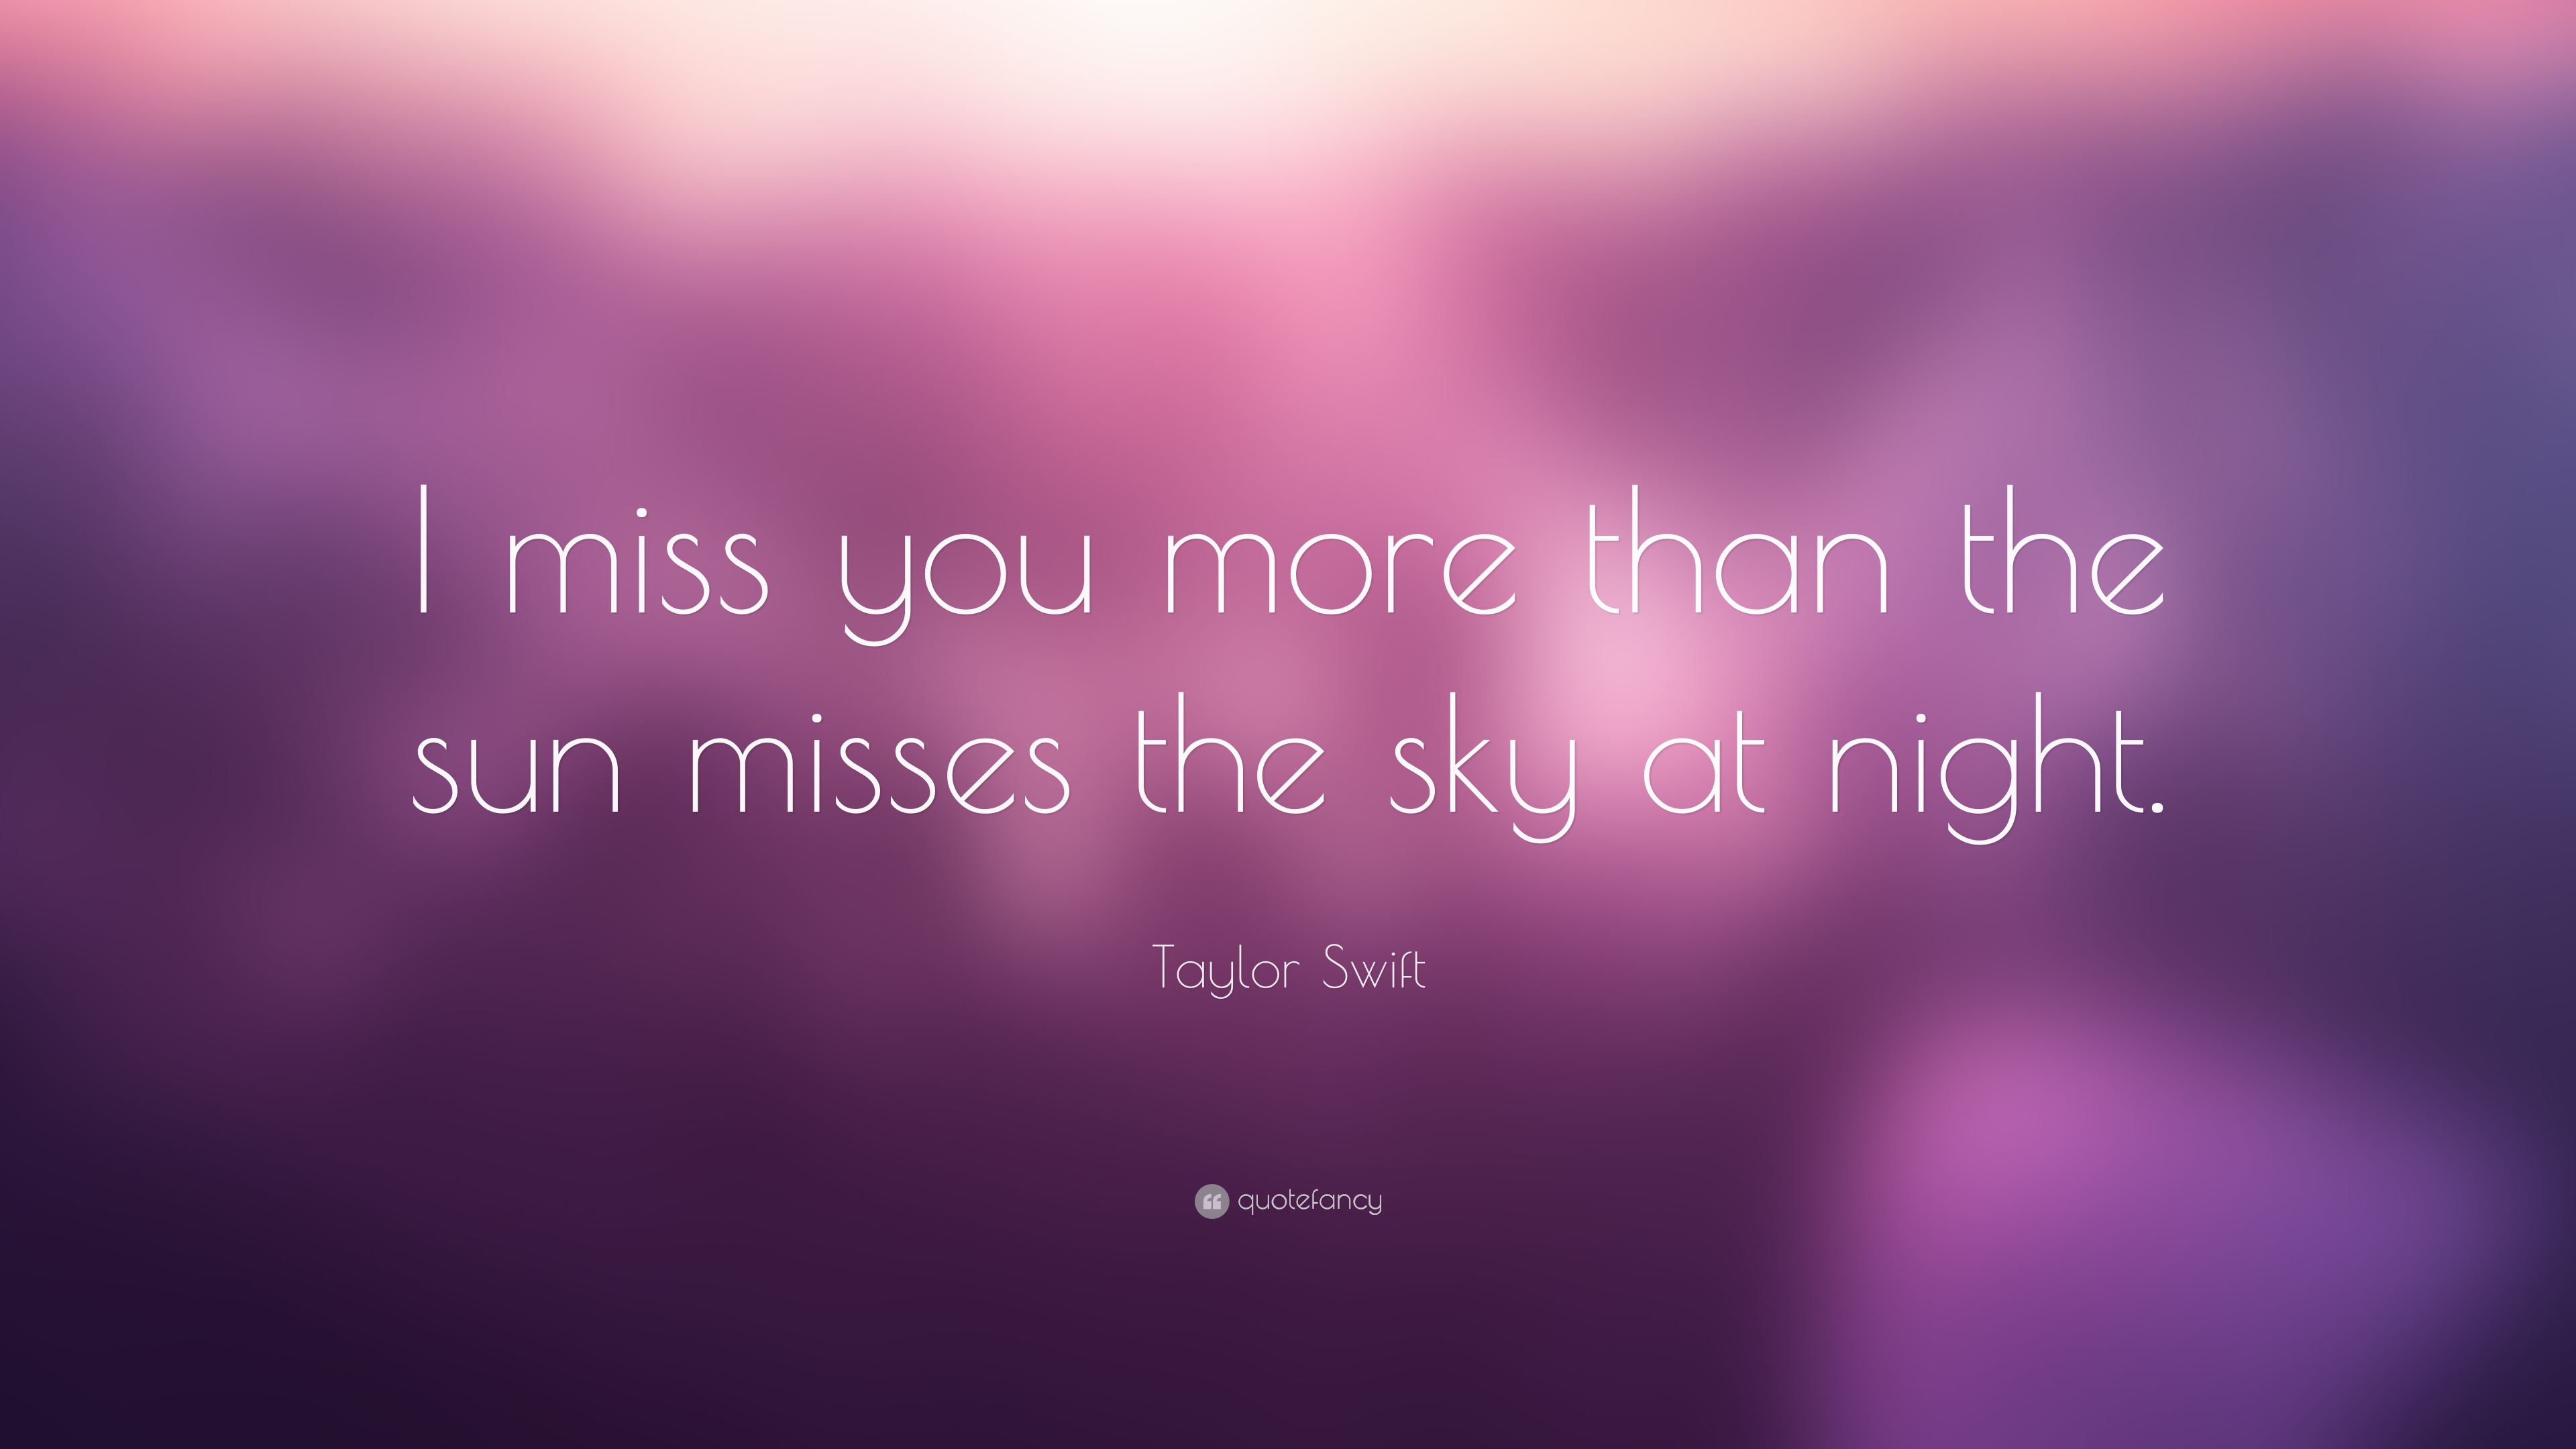 Taylor Swift Quote I Miss You More Than The Sun Misses The Sky At